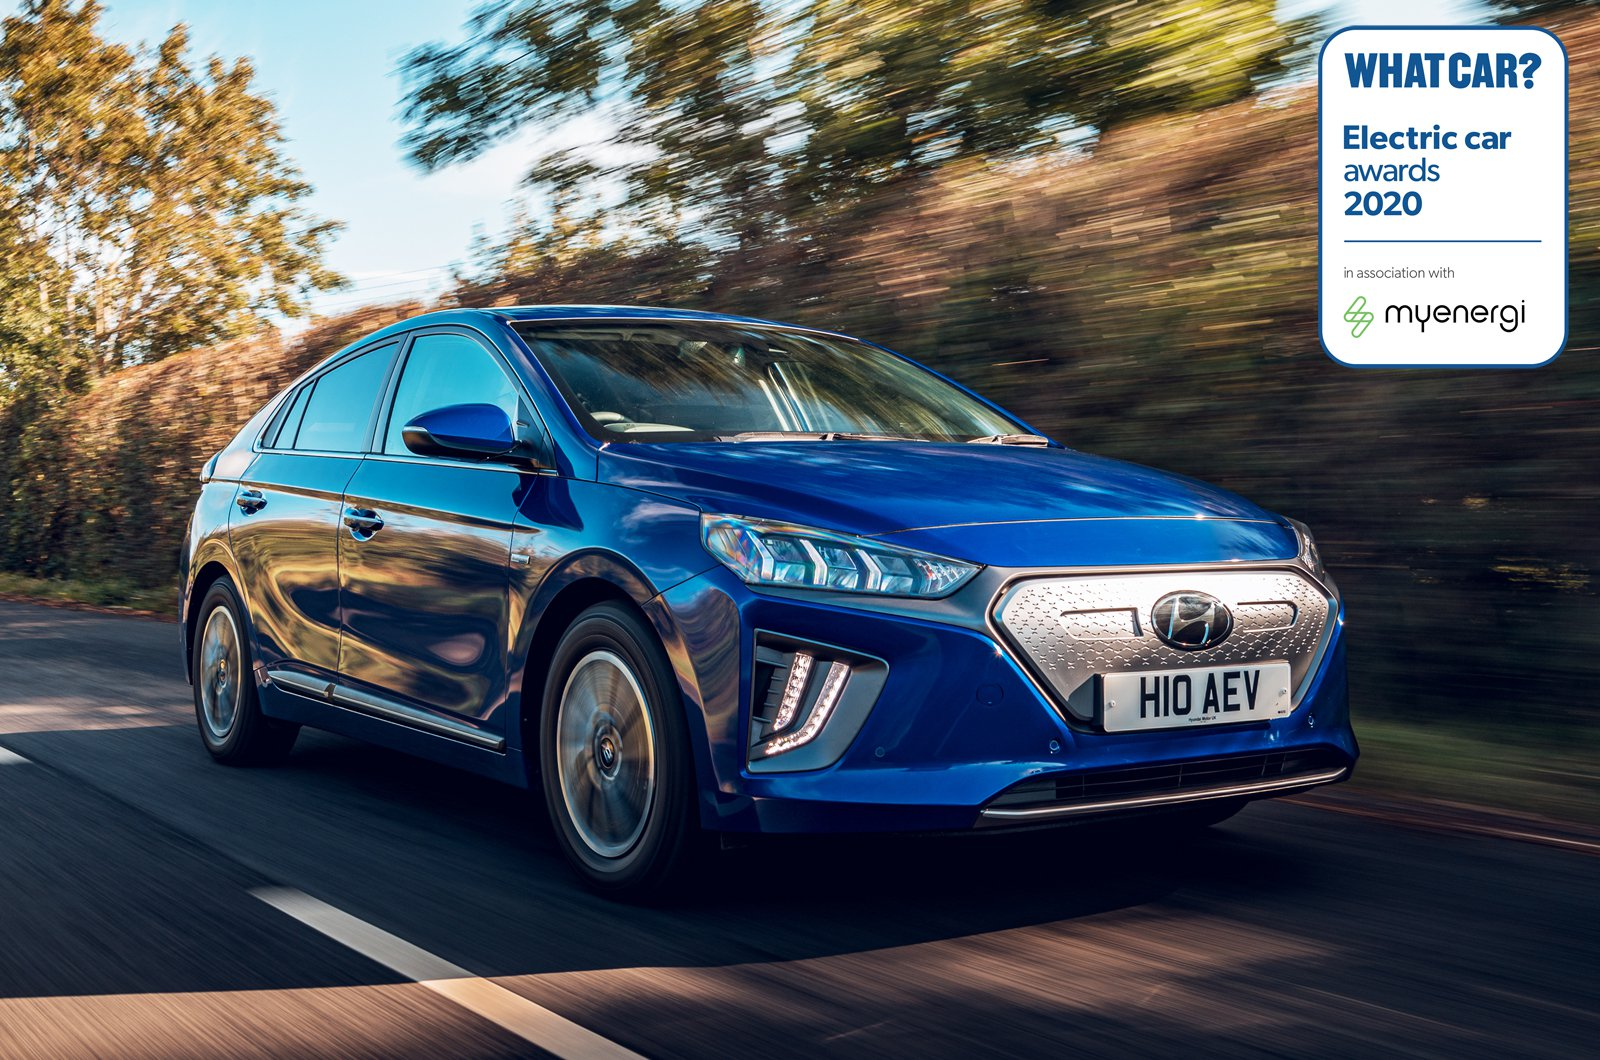 Electric Car Awards - Hyundai Ioniq Electric